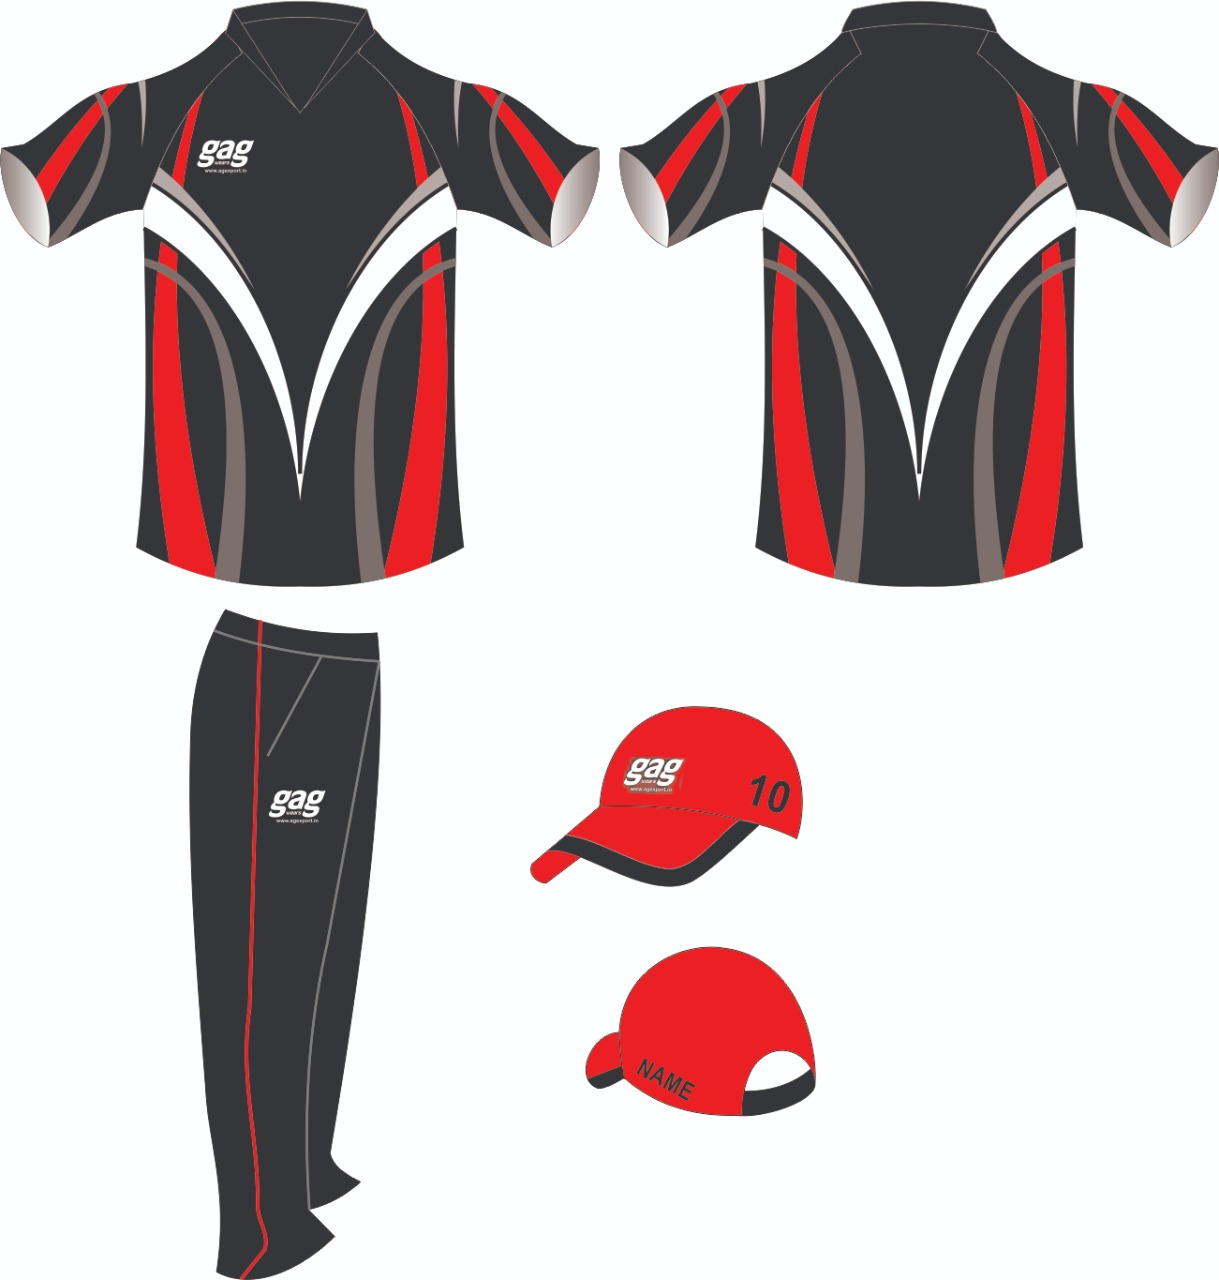 Cricket Clothing Manufacturers in Jalandhar in Australia